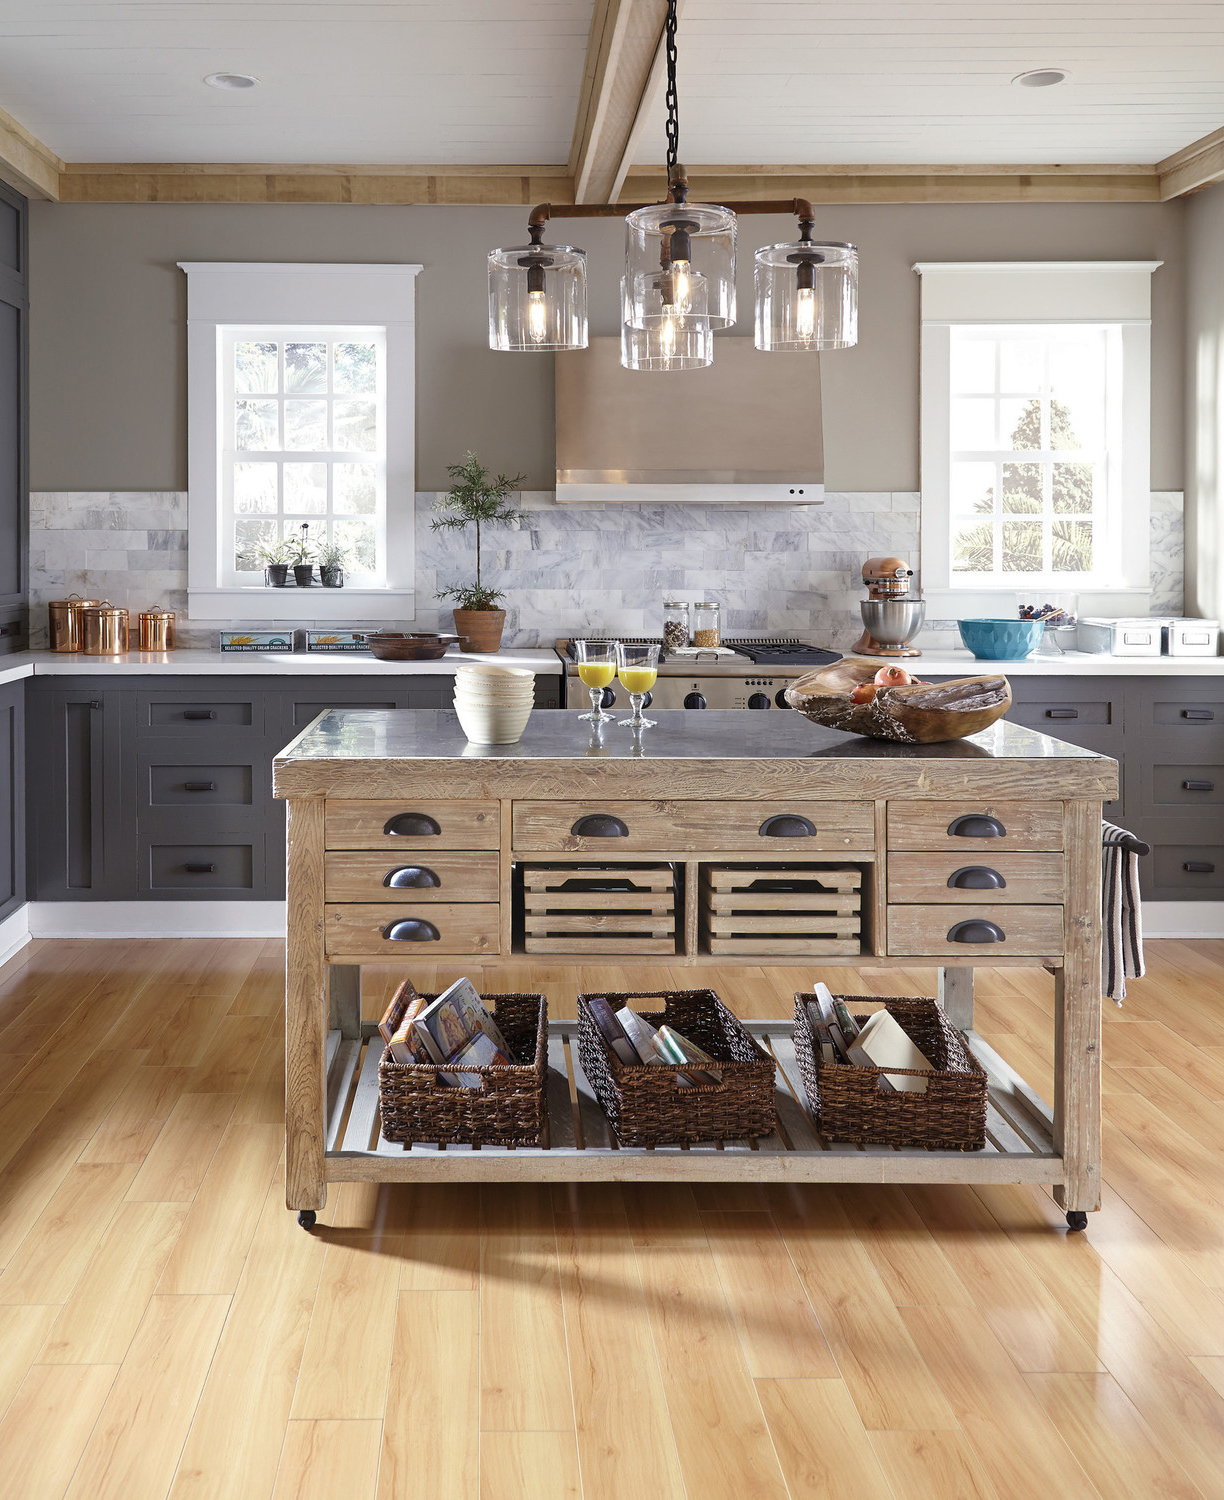 A Few Of Your Favorite Things Kitchen Island